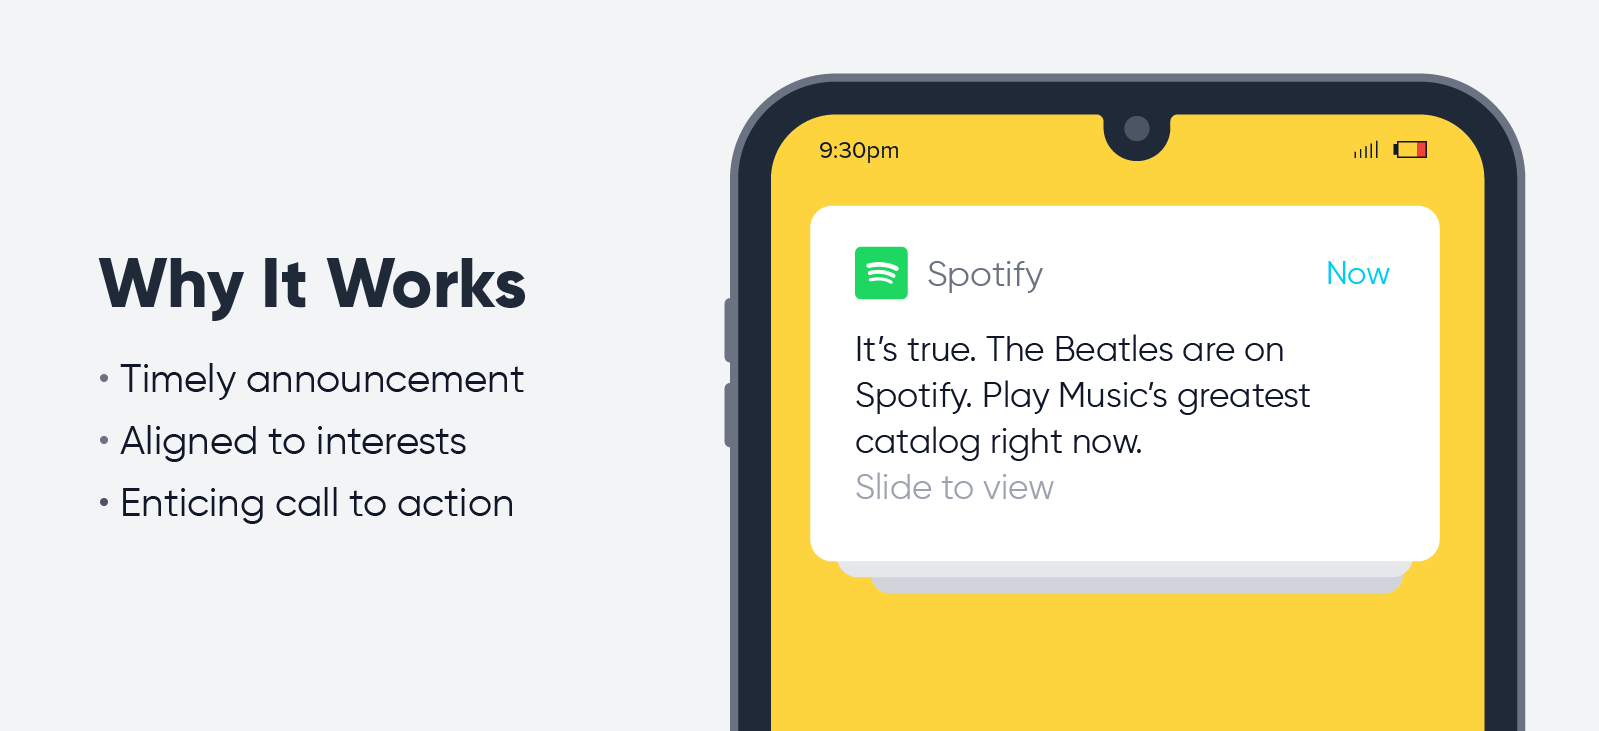 08 - Spotify push notification best practices